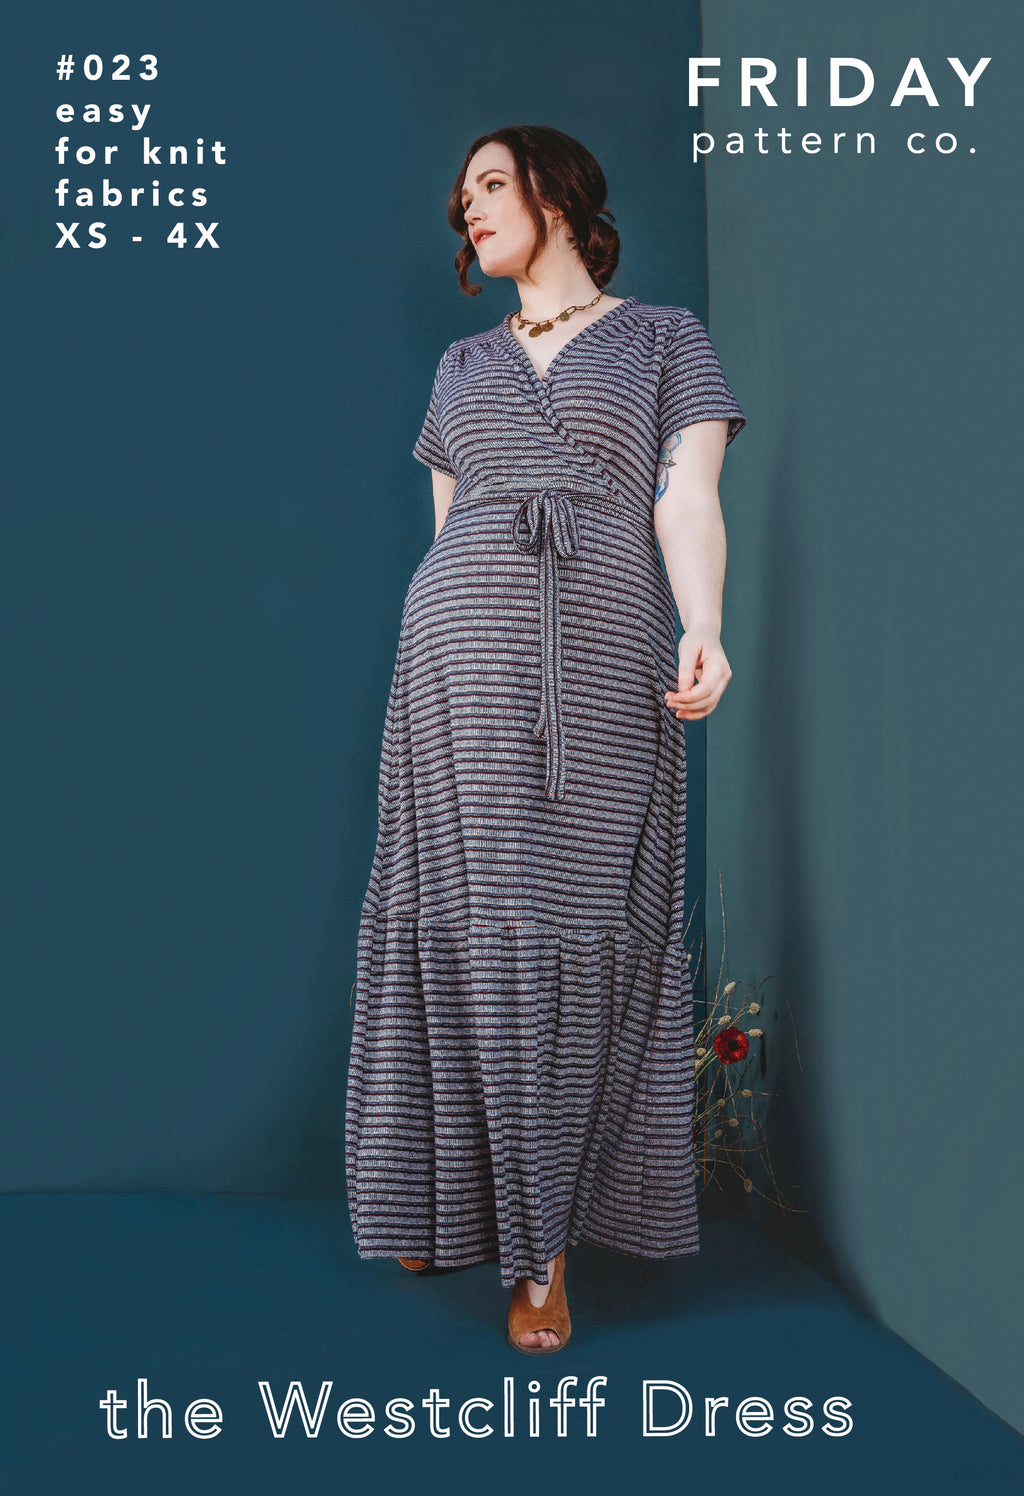 The Westcliff Dress - Printed Pattern